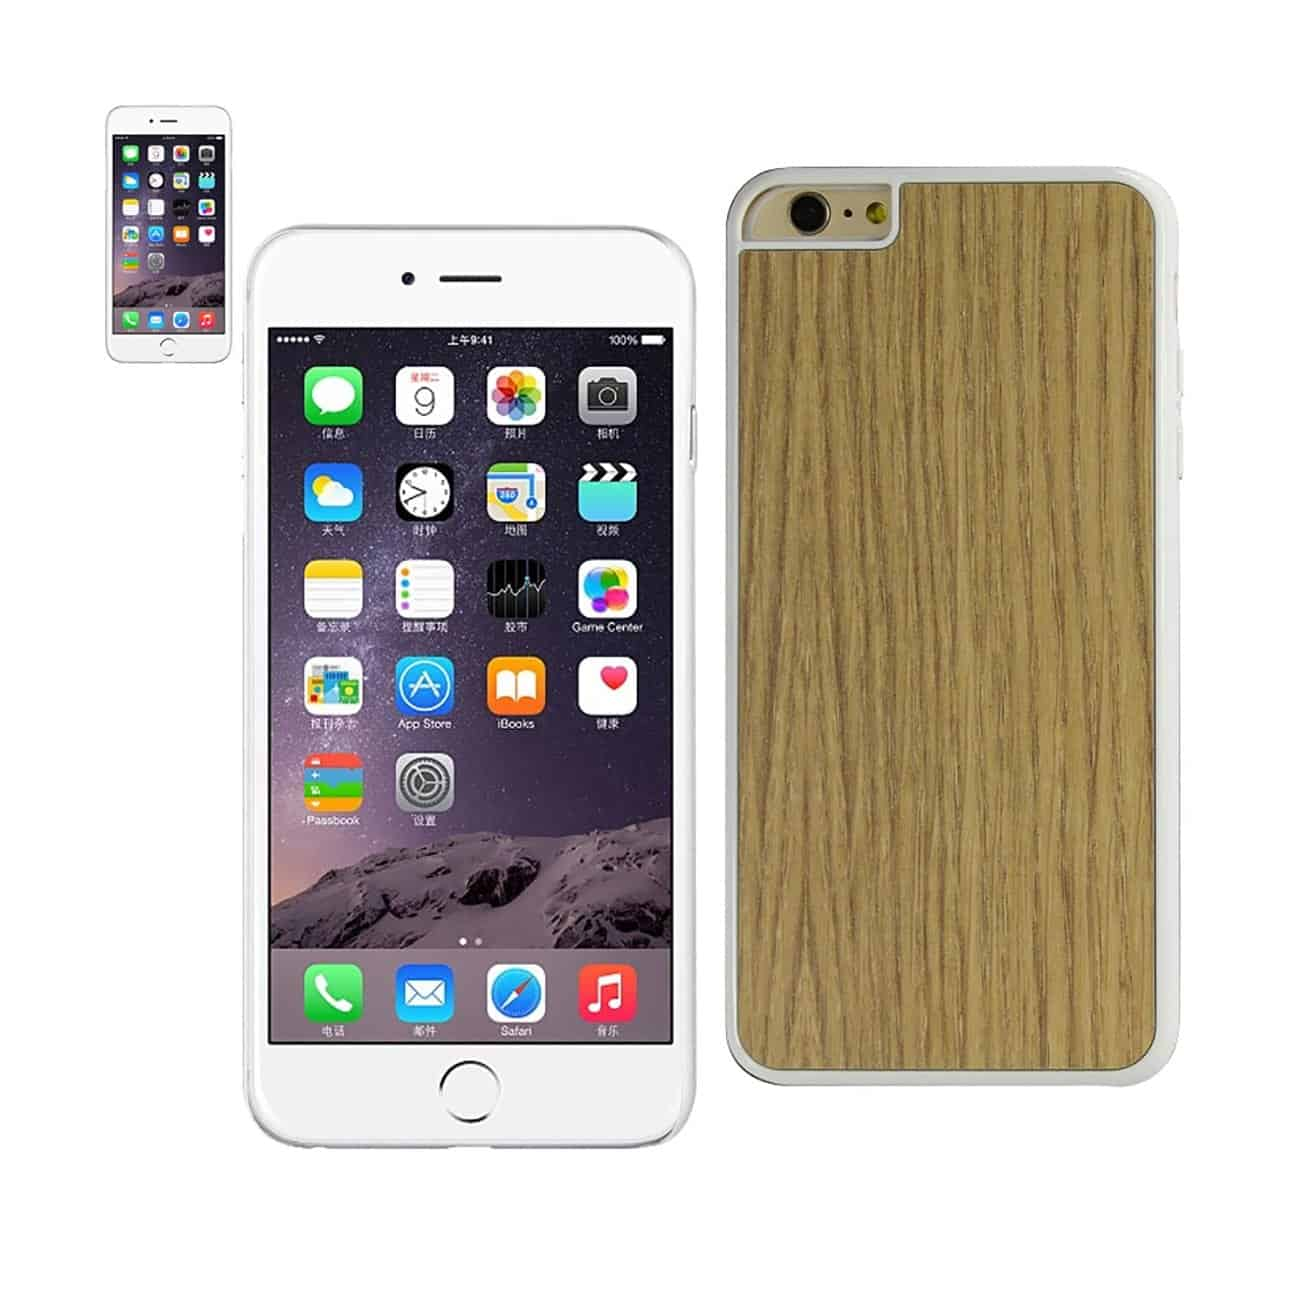 IPHONE 6 PLUS WOOD GRAIN SLIM SNAP ON CASE IN WHITE